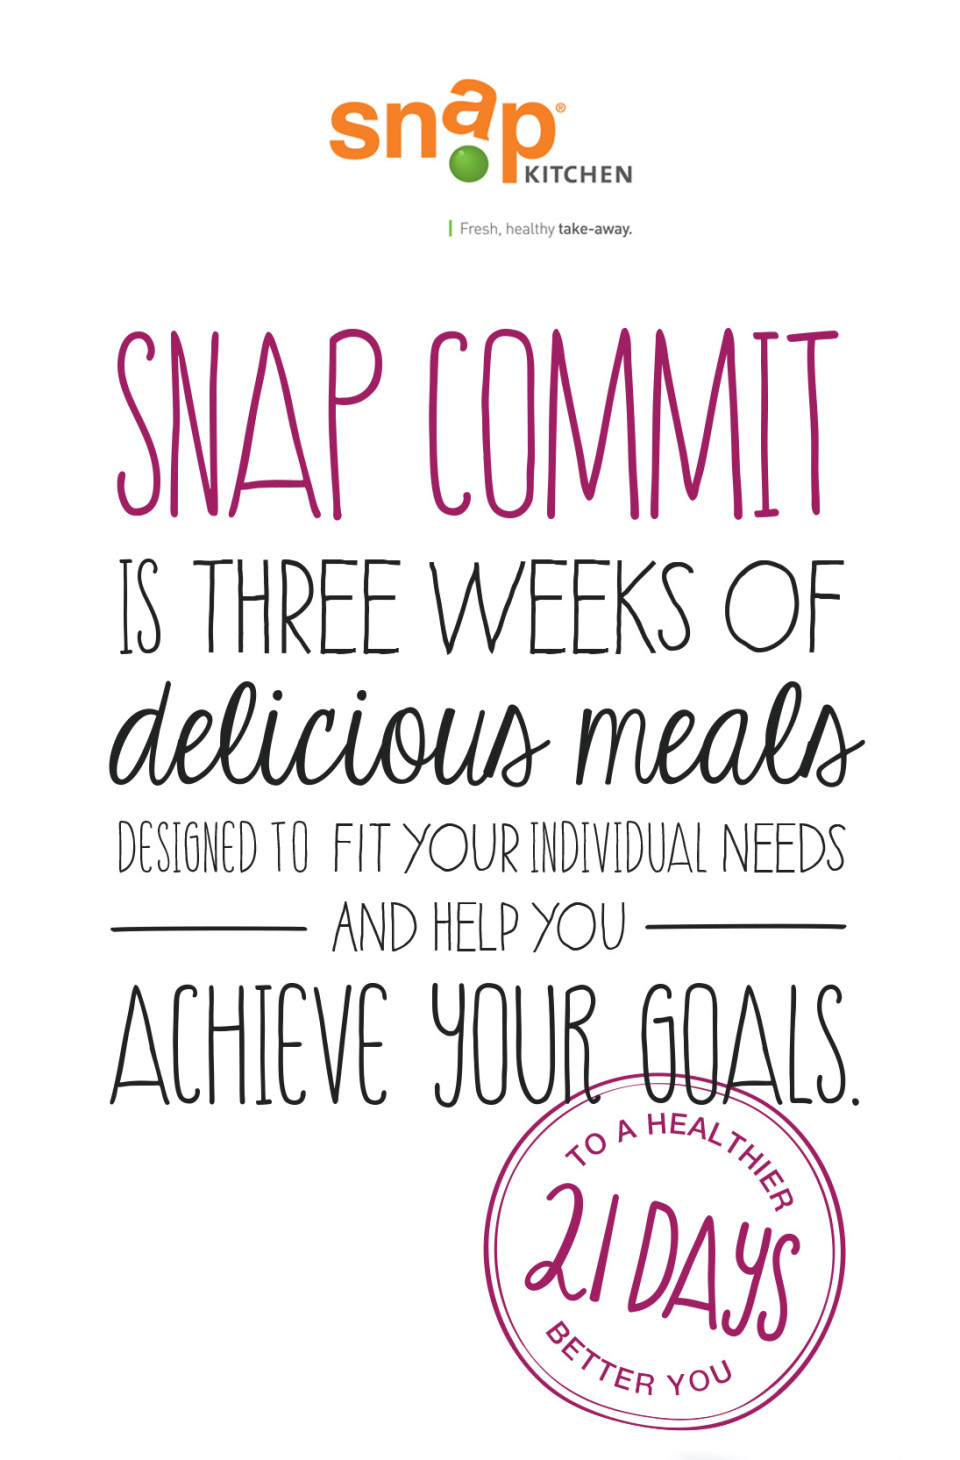 snap kitchen | 21 day commit diet plan | texas stores